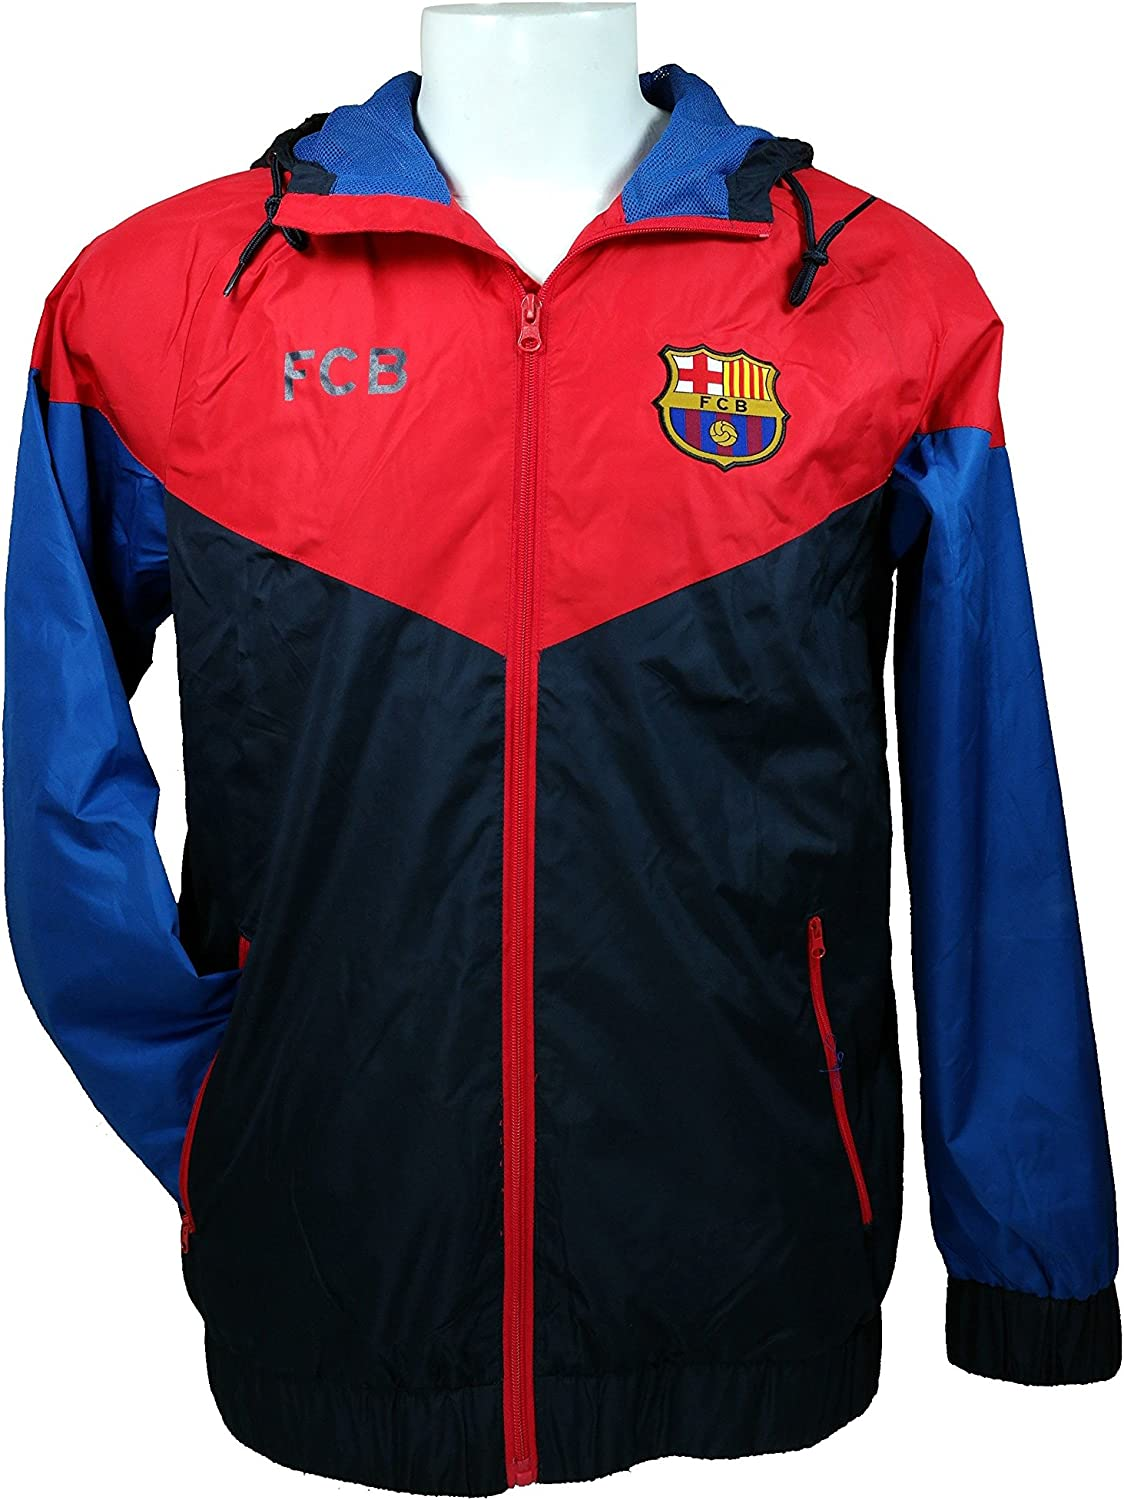 Amazon Com Fc Barcelona Official License Soccer Windbreaker Jacket Football Adult Size 014 Large Clothing